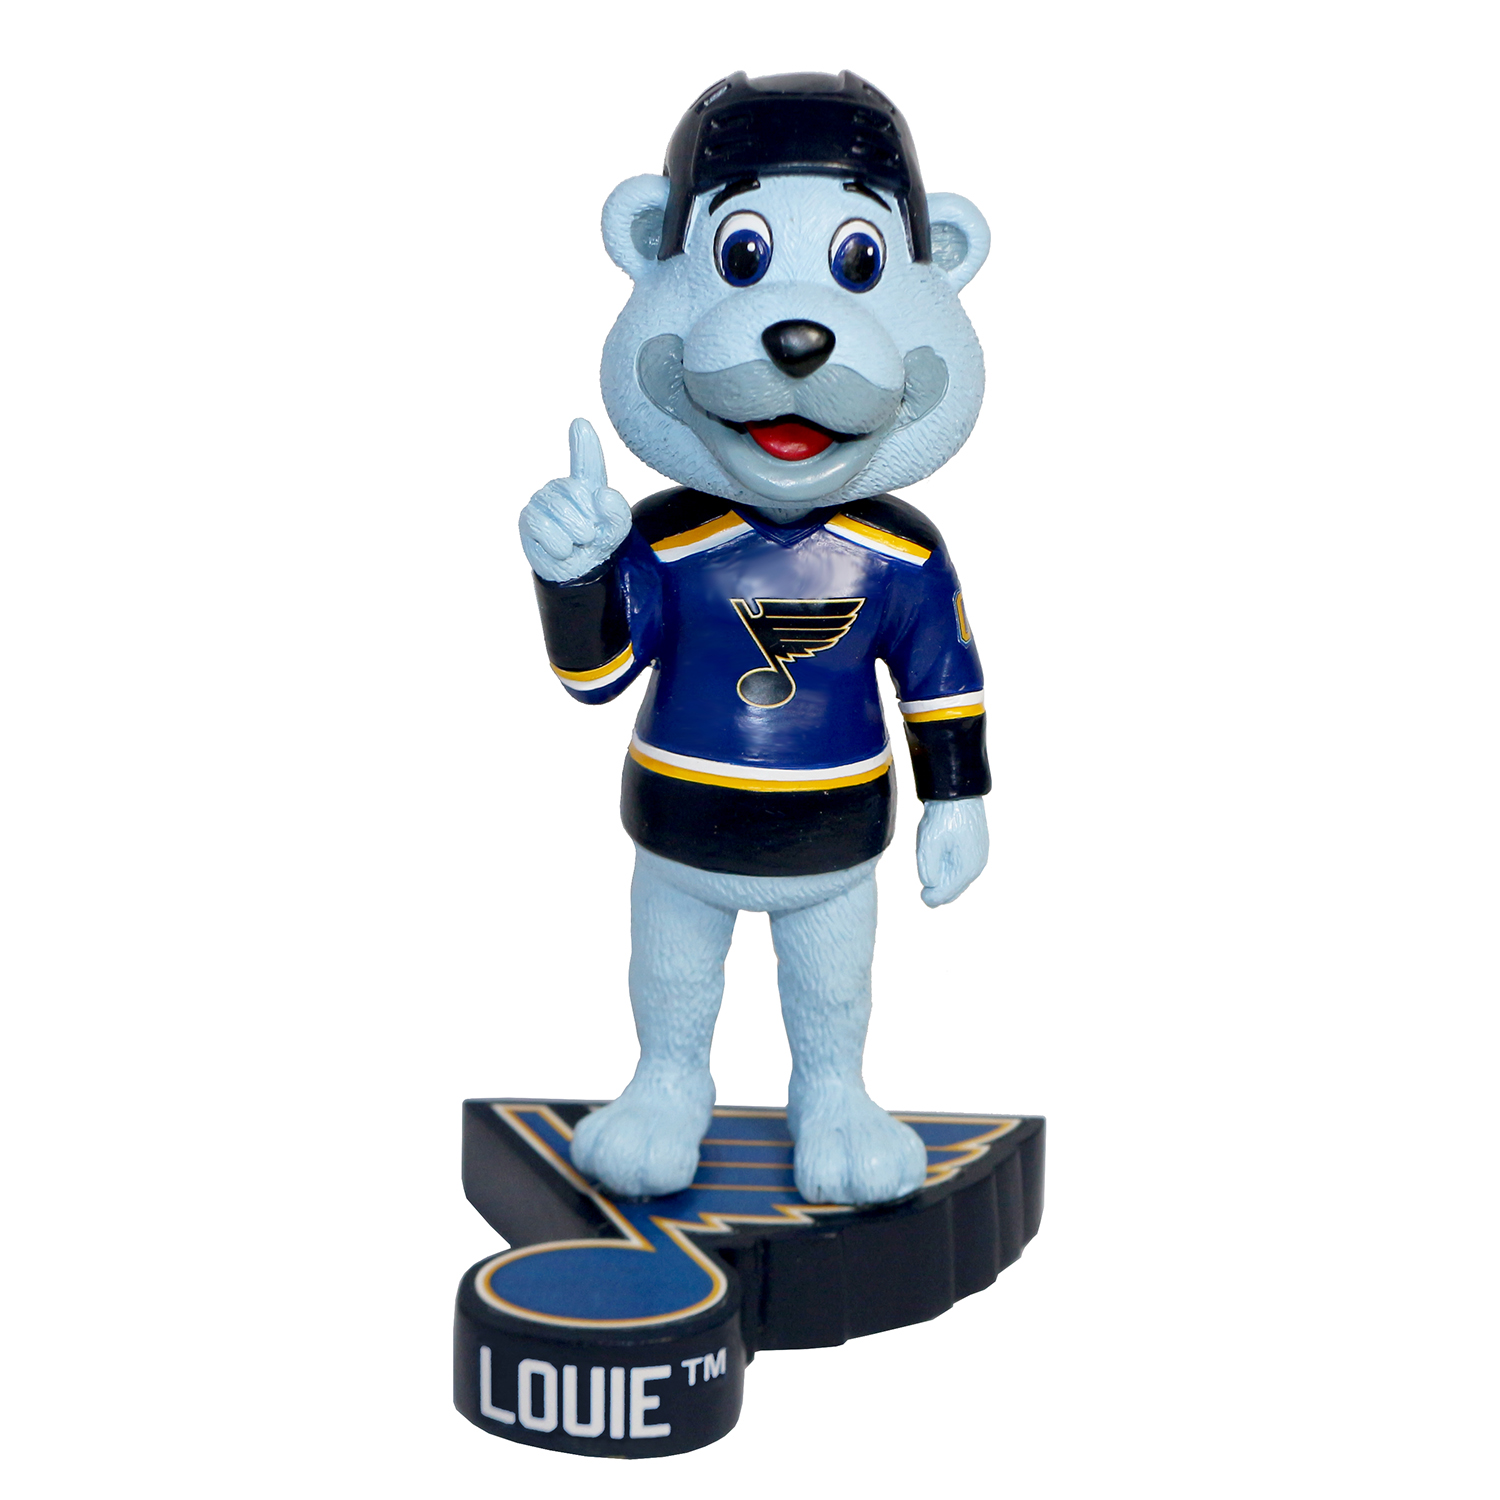 St. Louis Blues Louie Mascot Bobblehead Gallery